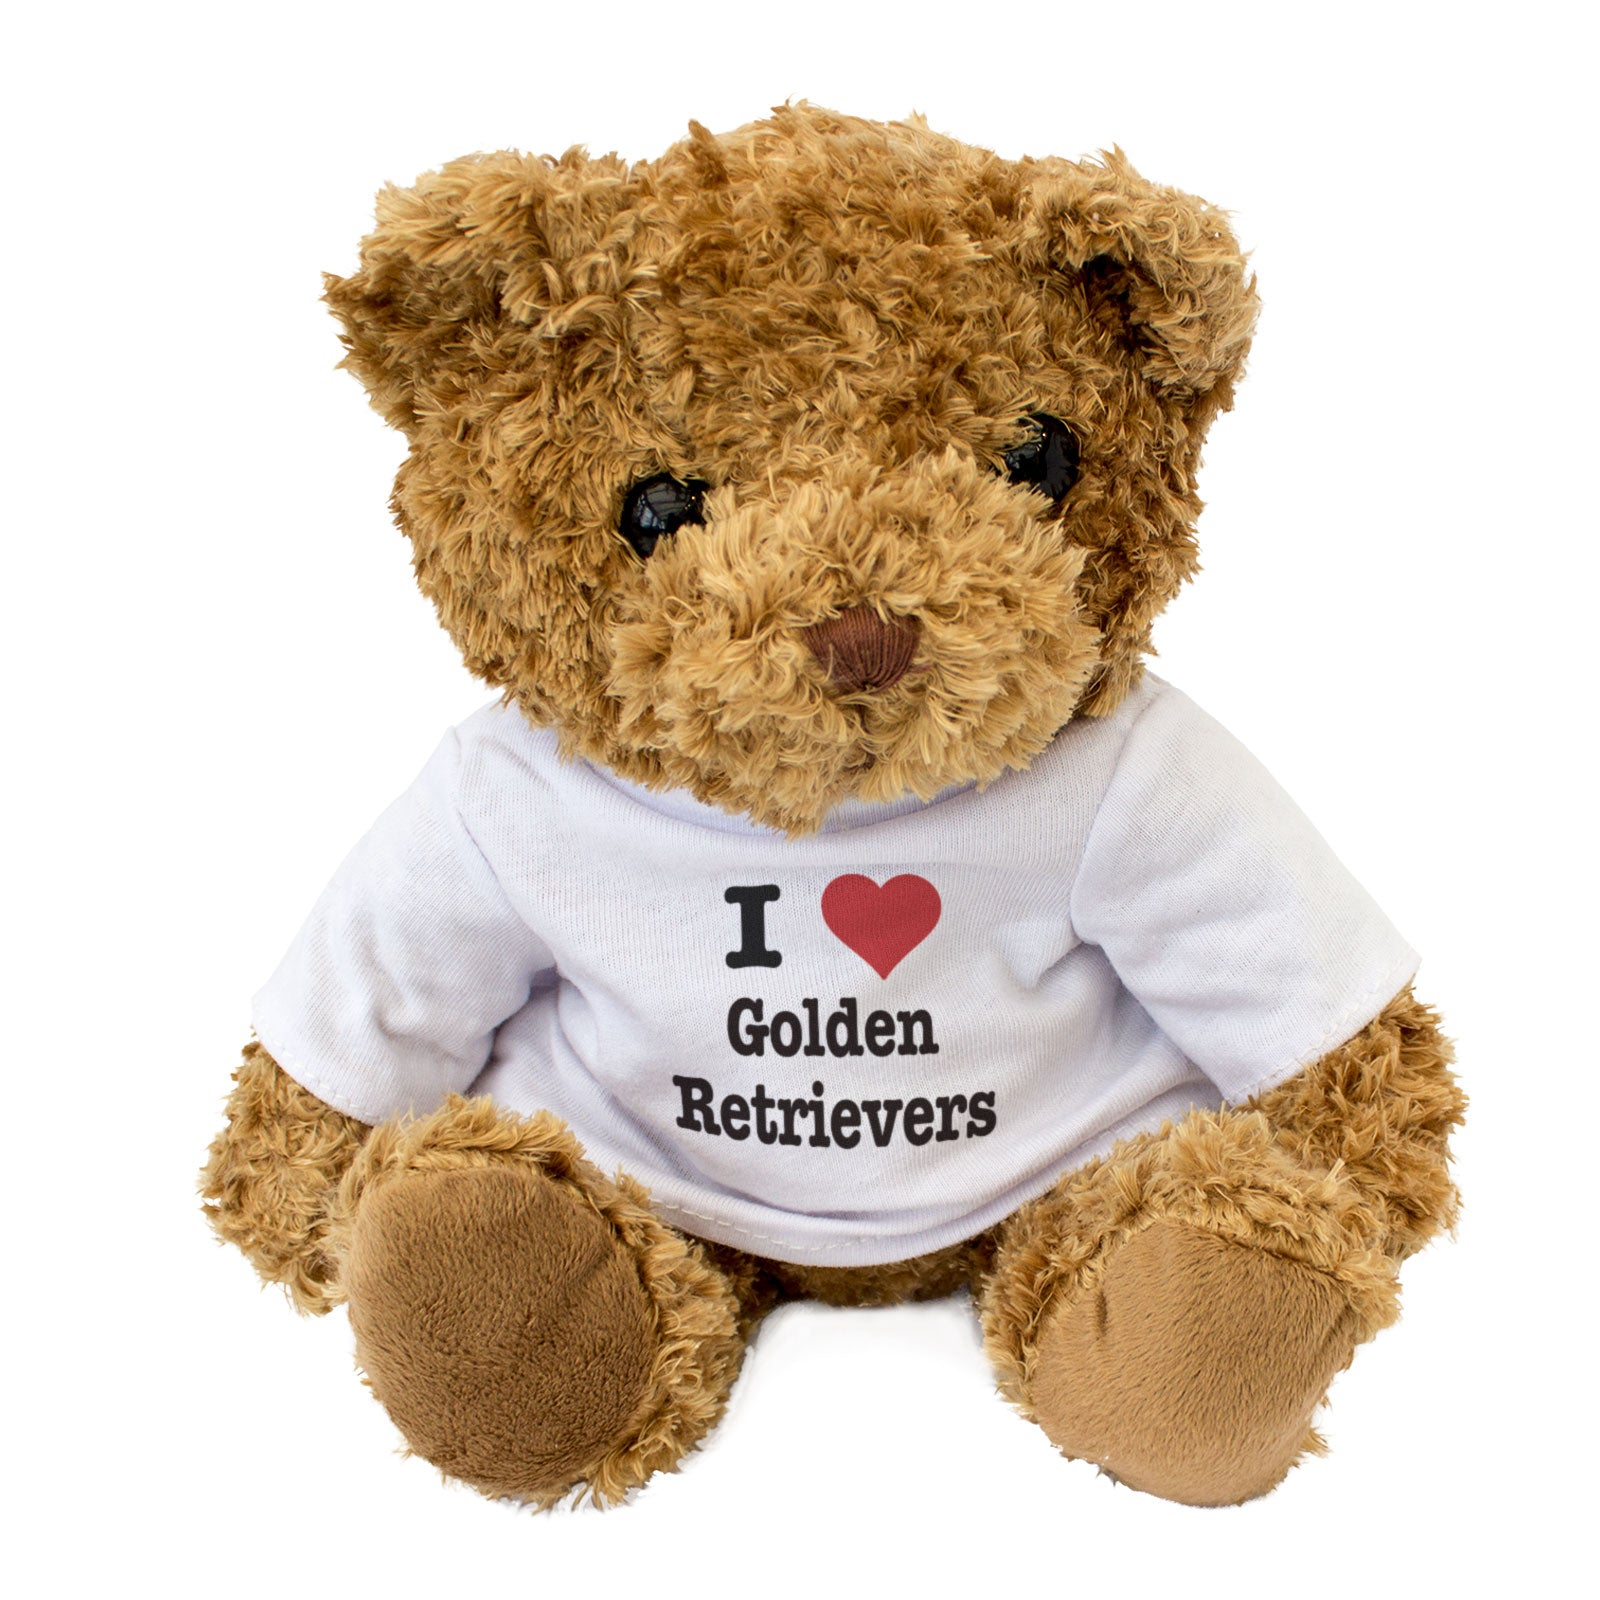 I Love Golden Retrievers - Teddy Bear